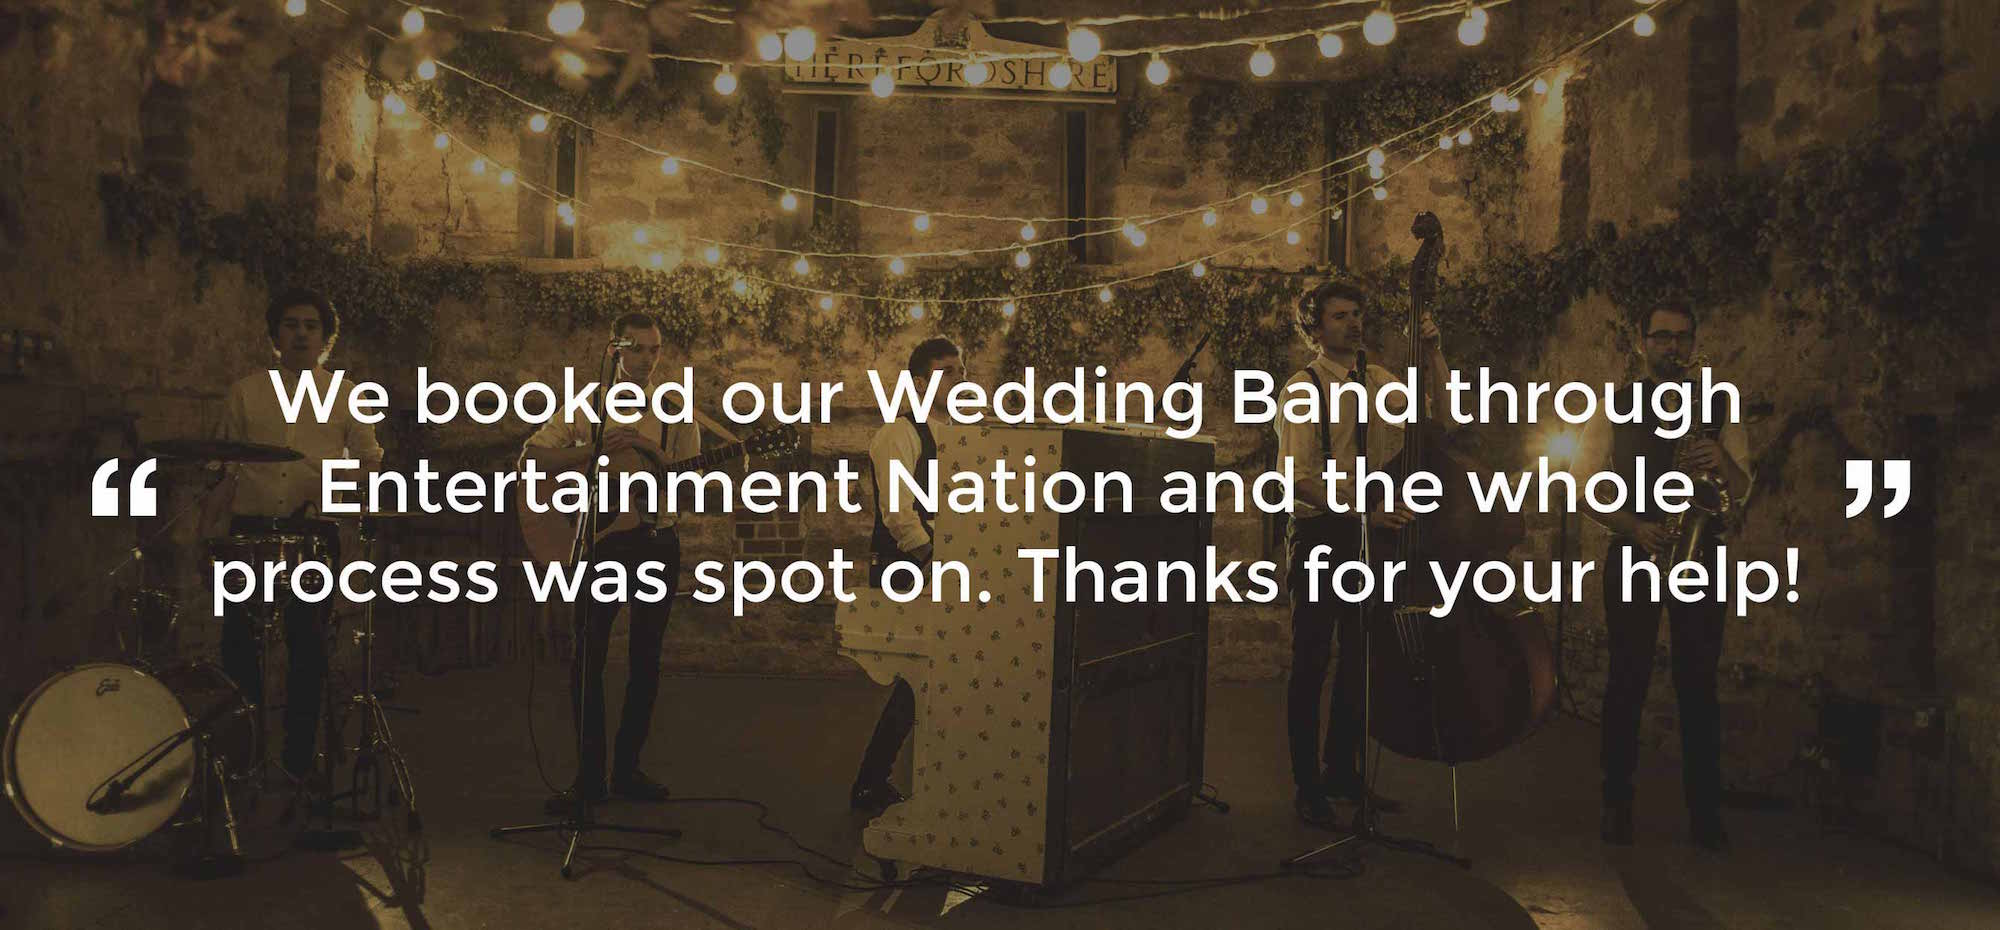 Review of Wedding Band Plymouth